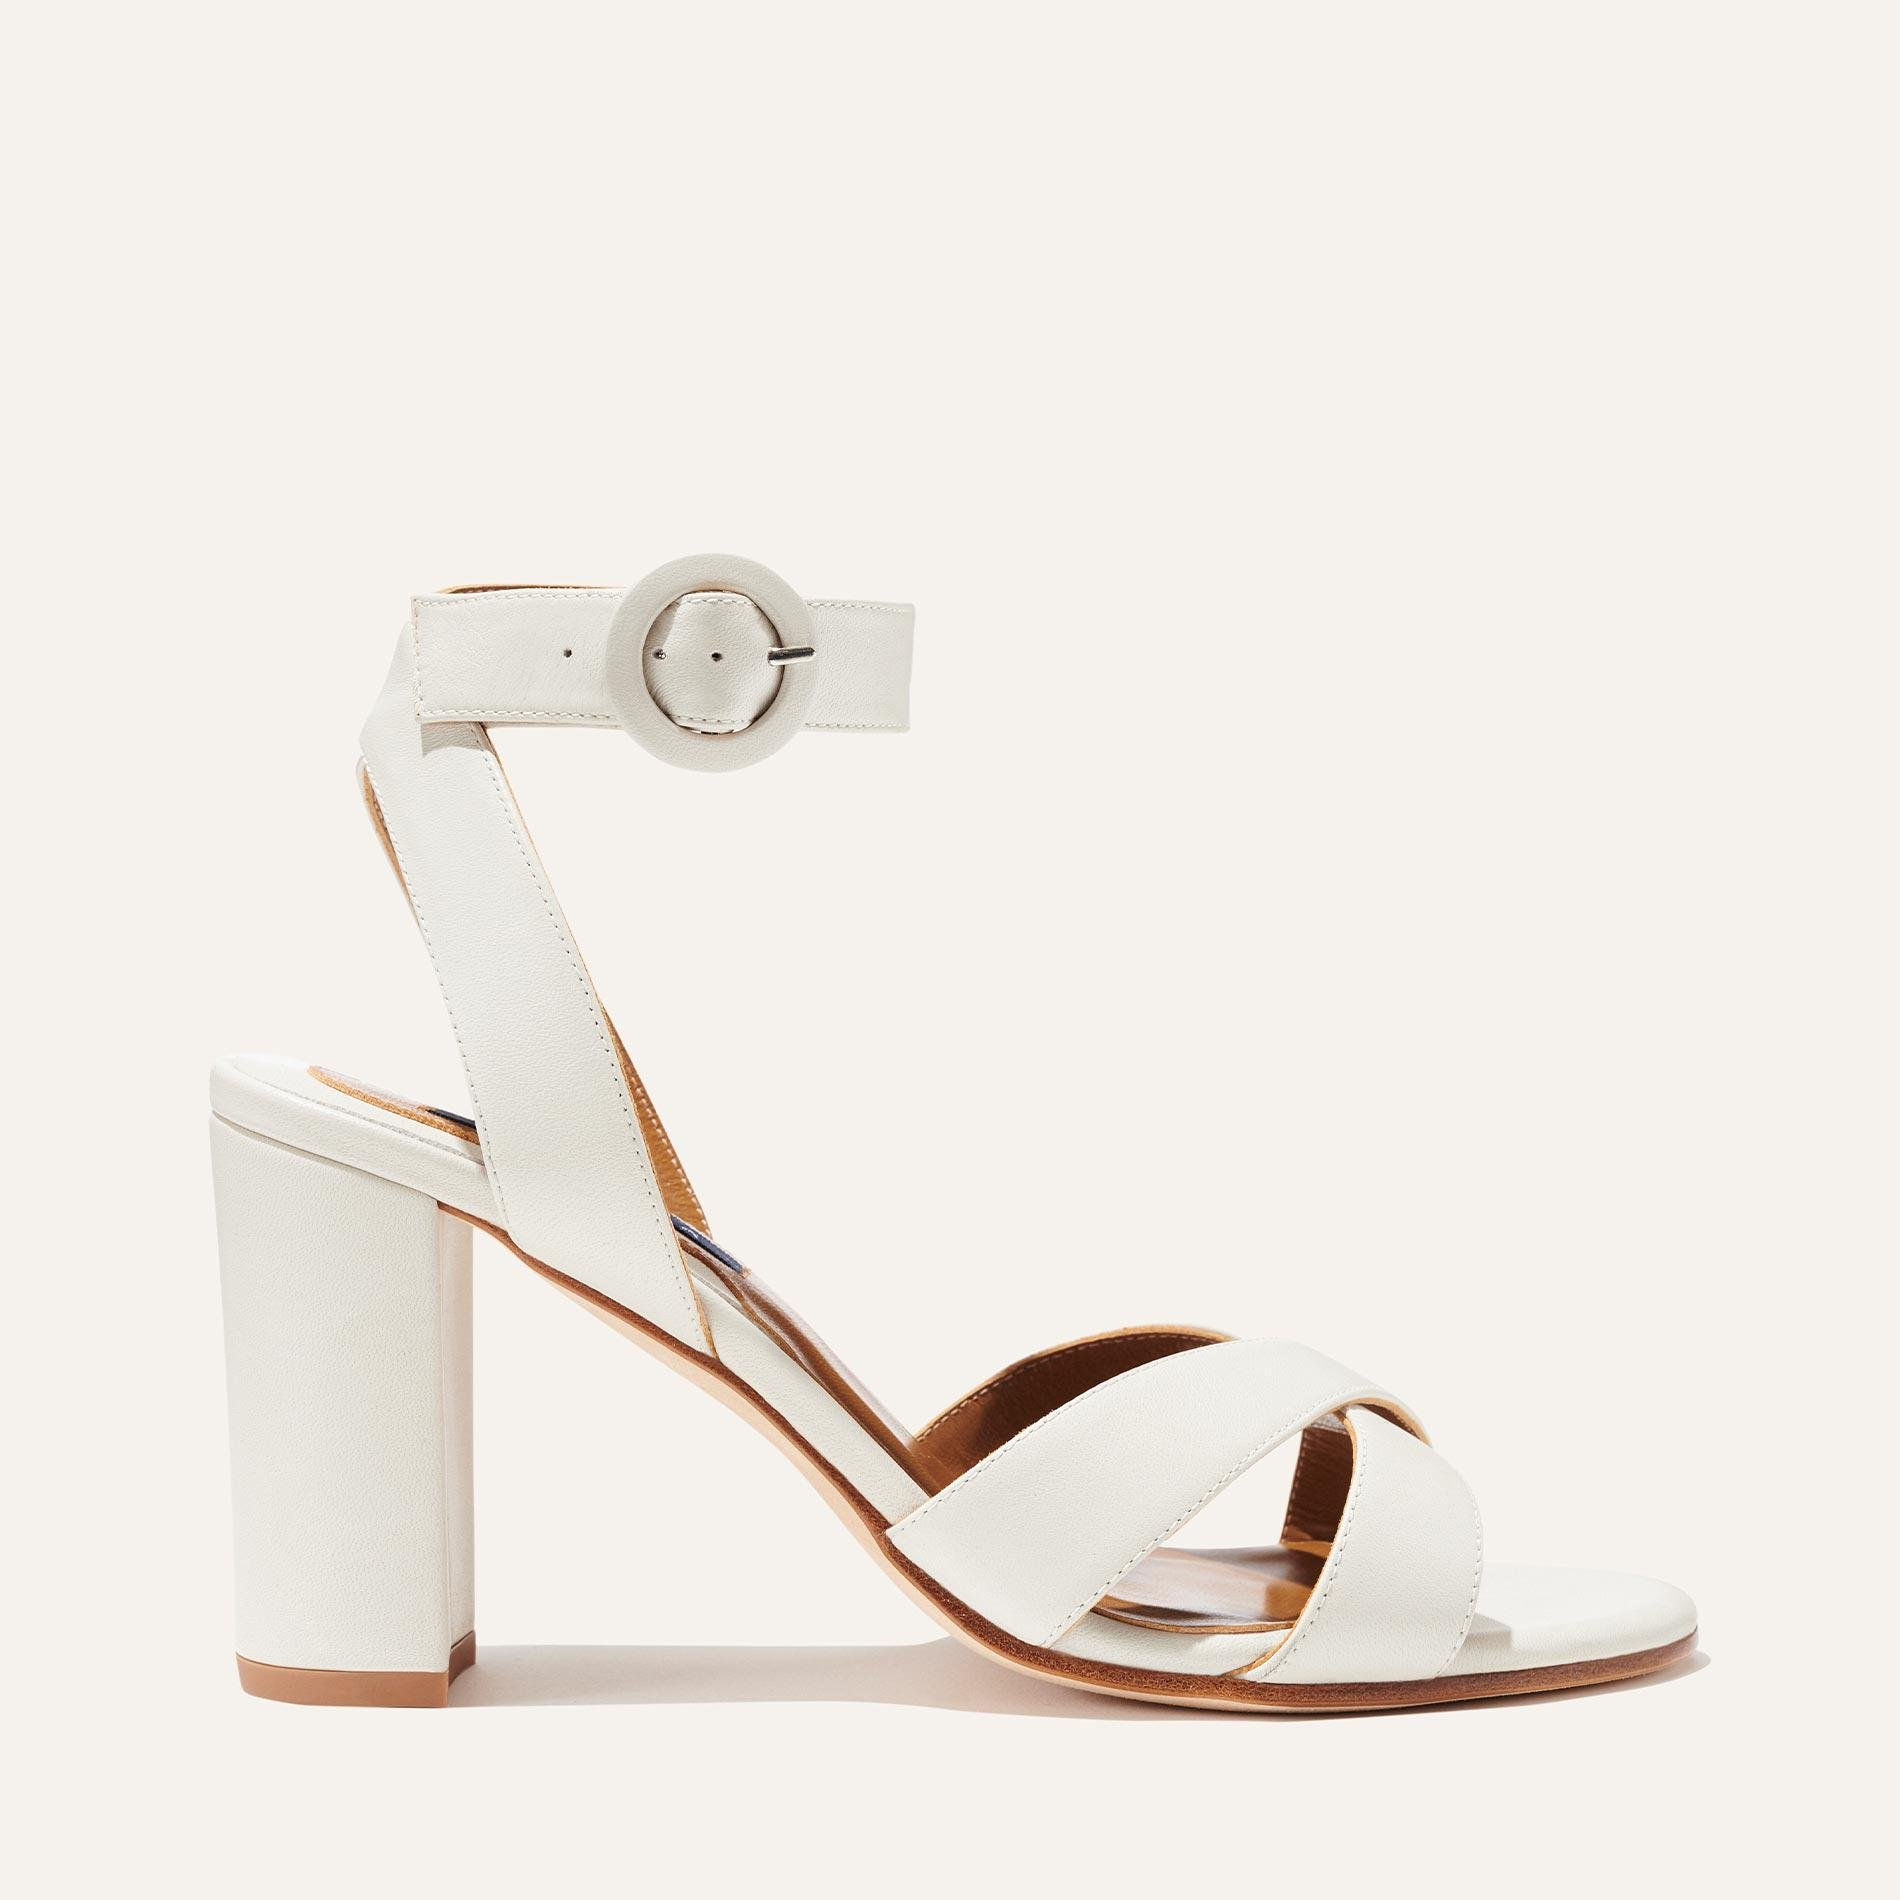 The Uptown Sandal - Ivory